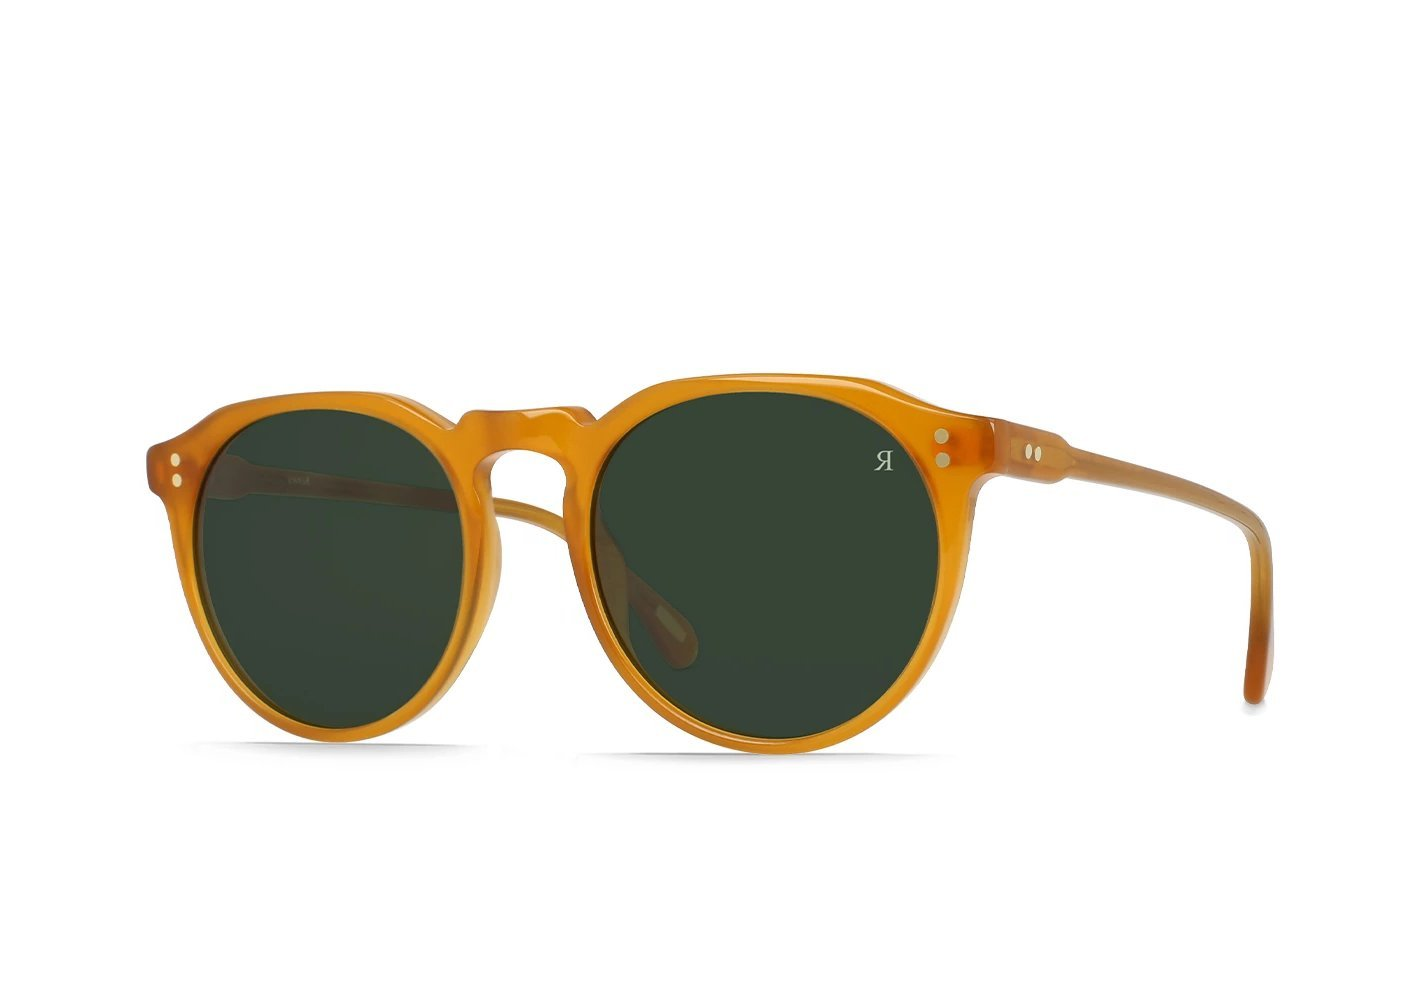 RAEN Remmy 49 Honey/Bottle Green - Board Store RaenSunglasses